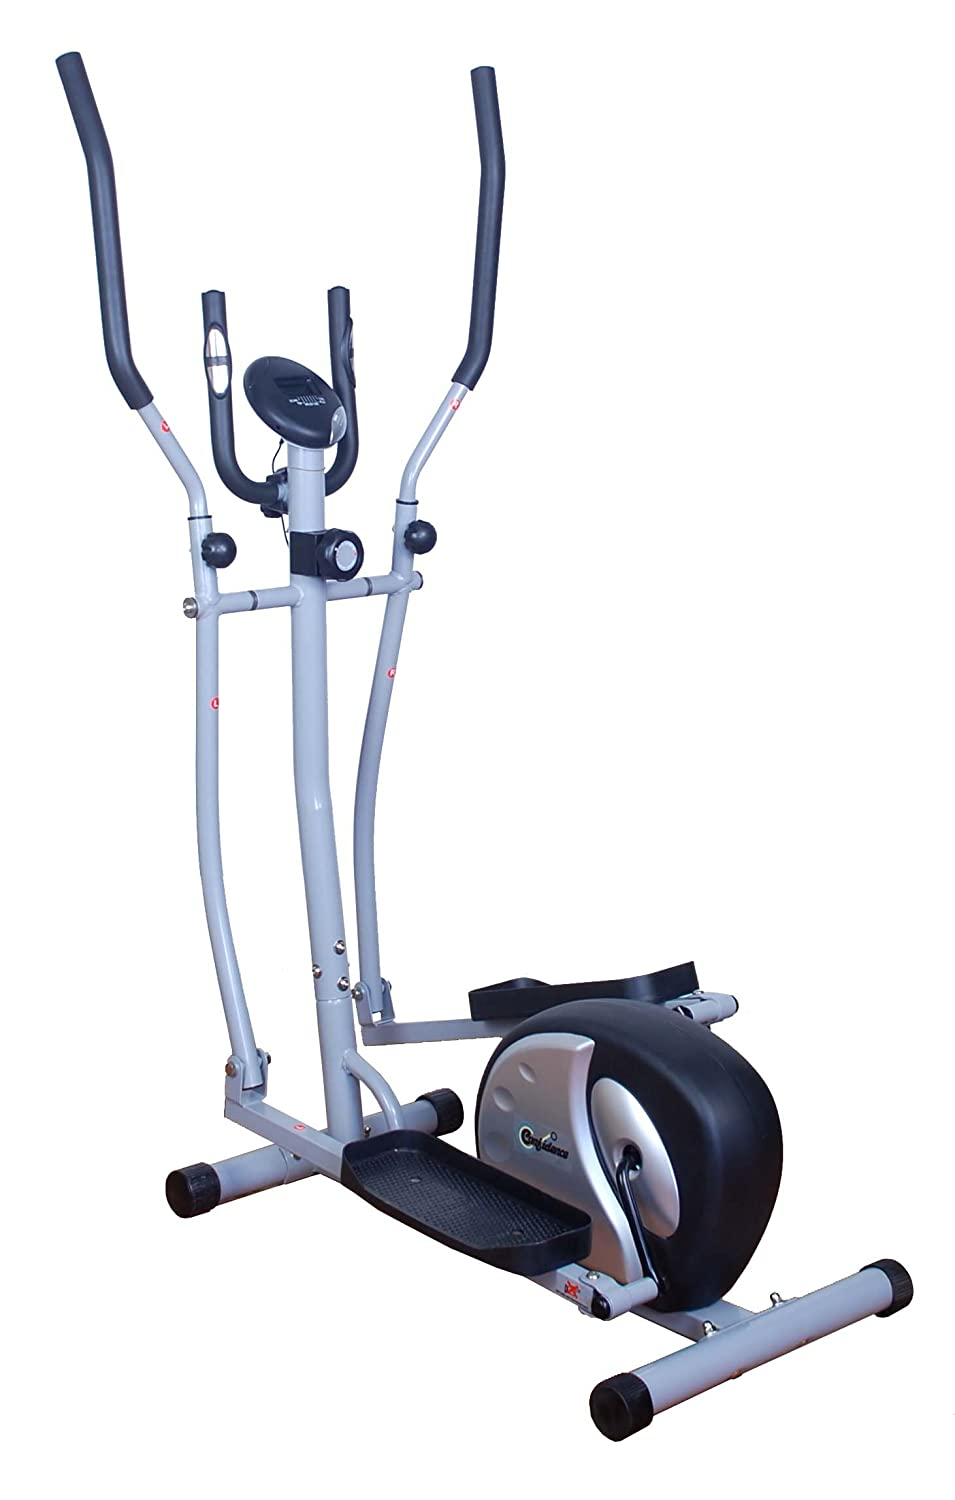 Confidence Fitness Space Saving Elliptical Trainer